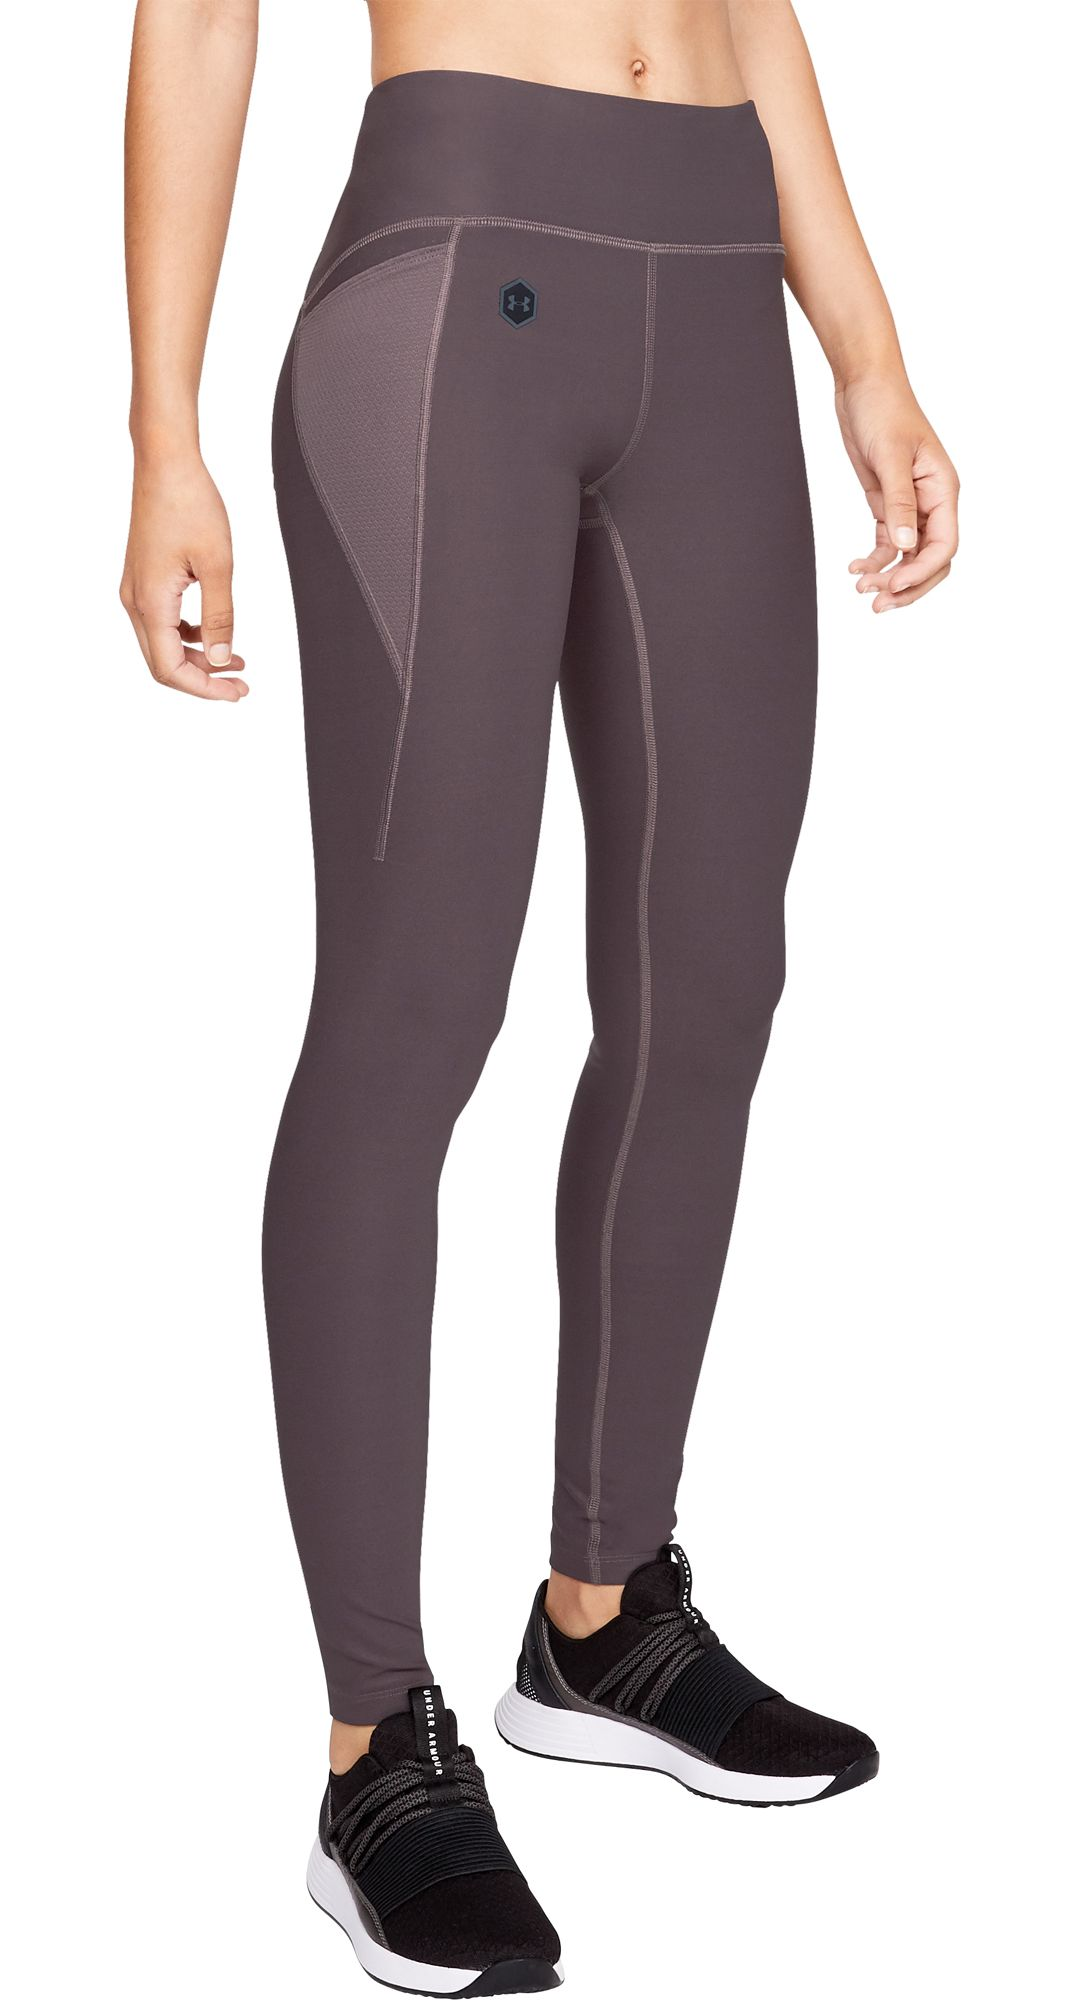 f20a6b5404de5 Under Armour Women's RUSH Compression Leggings | DICK'S Sporting Goods